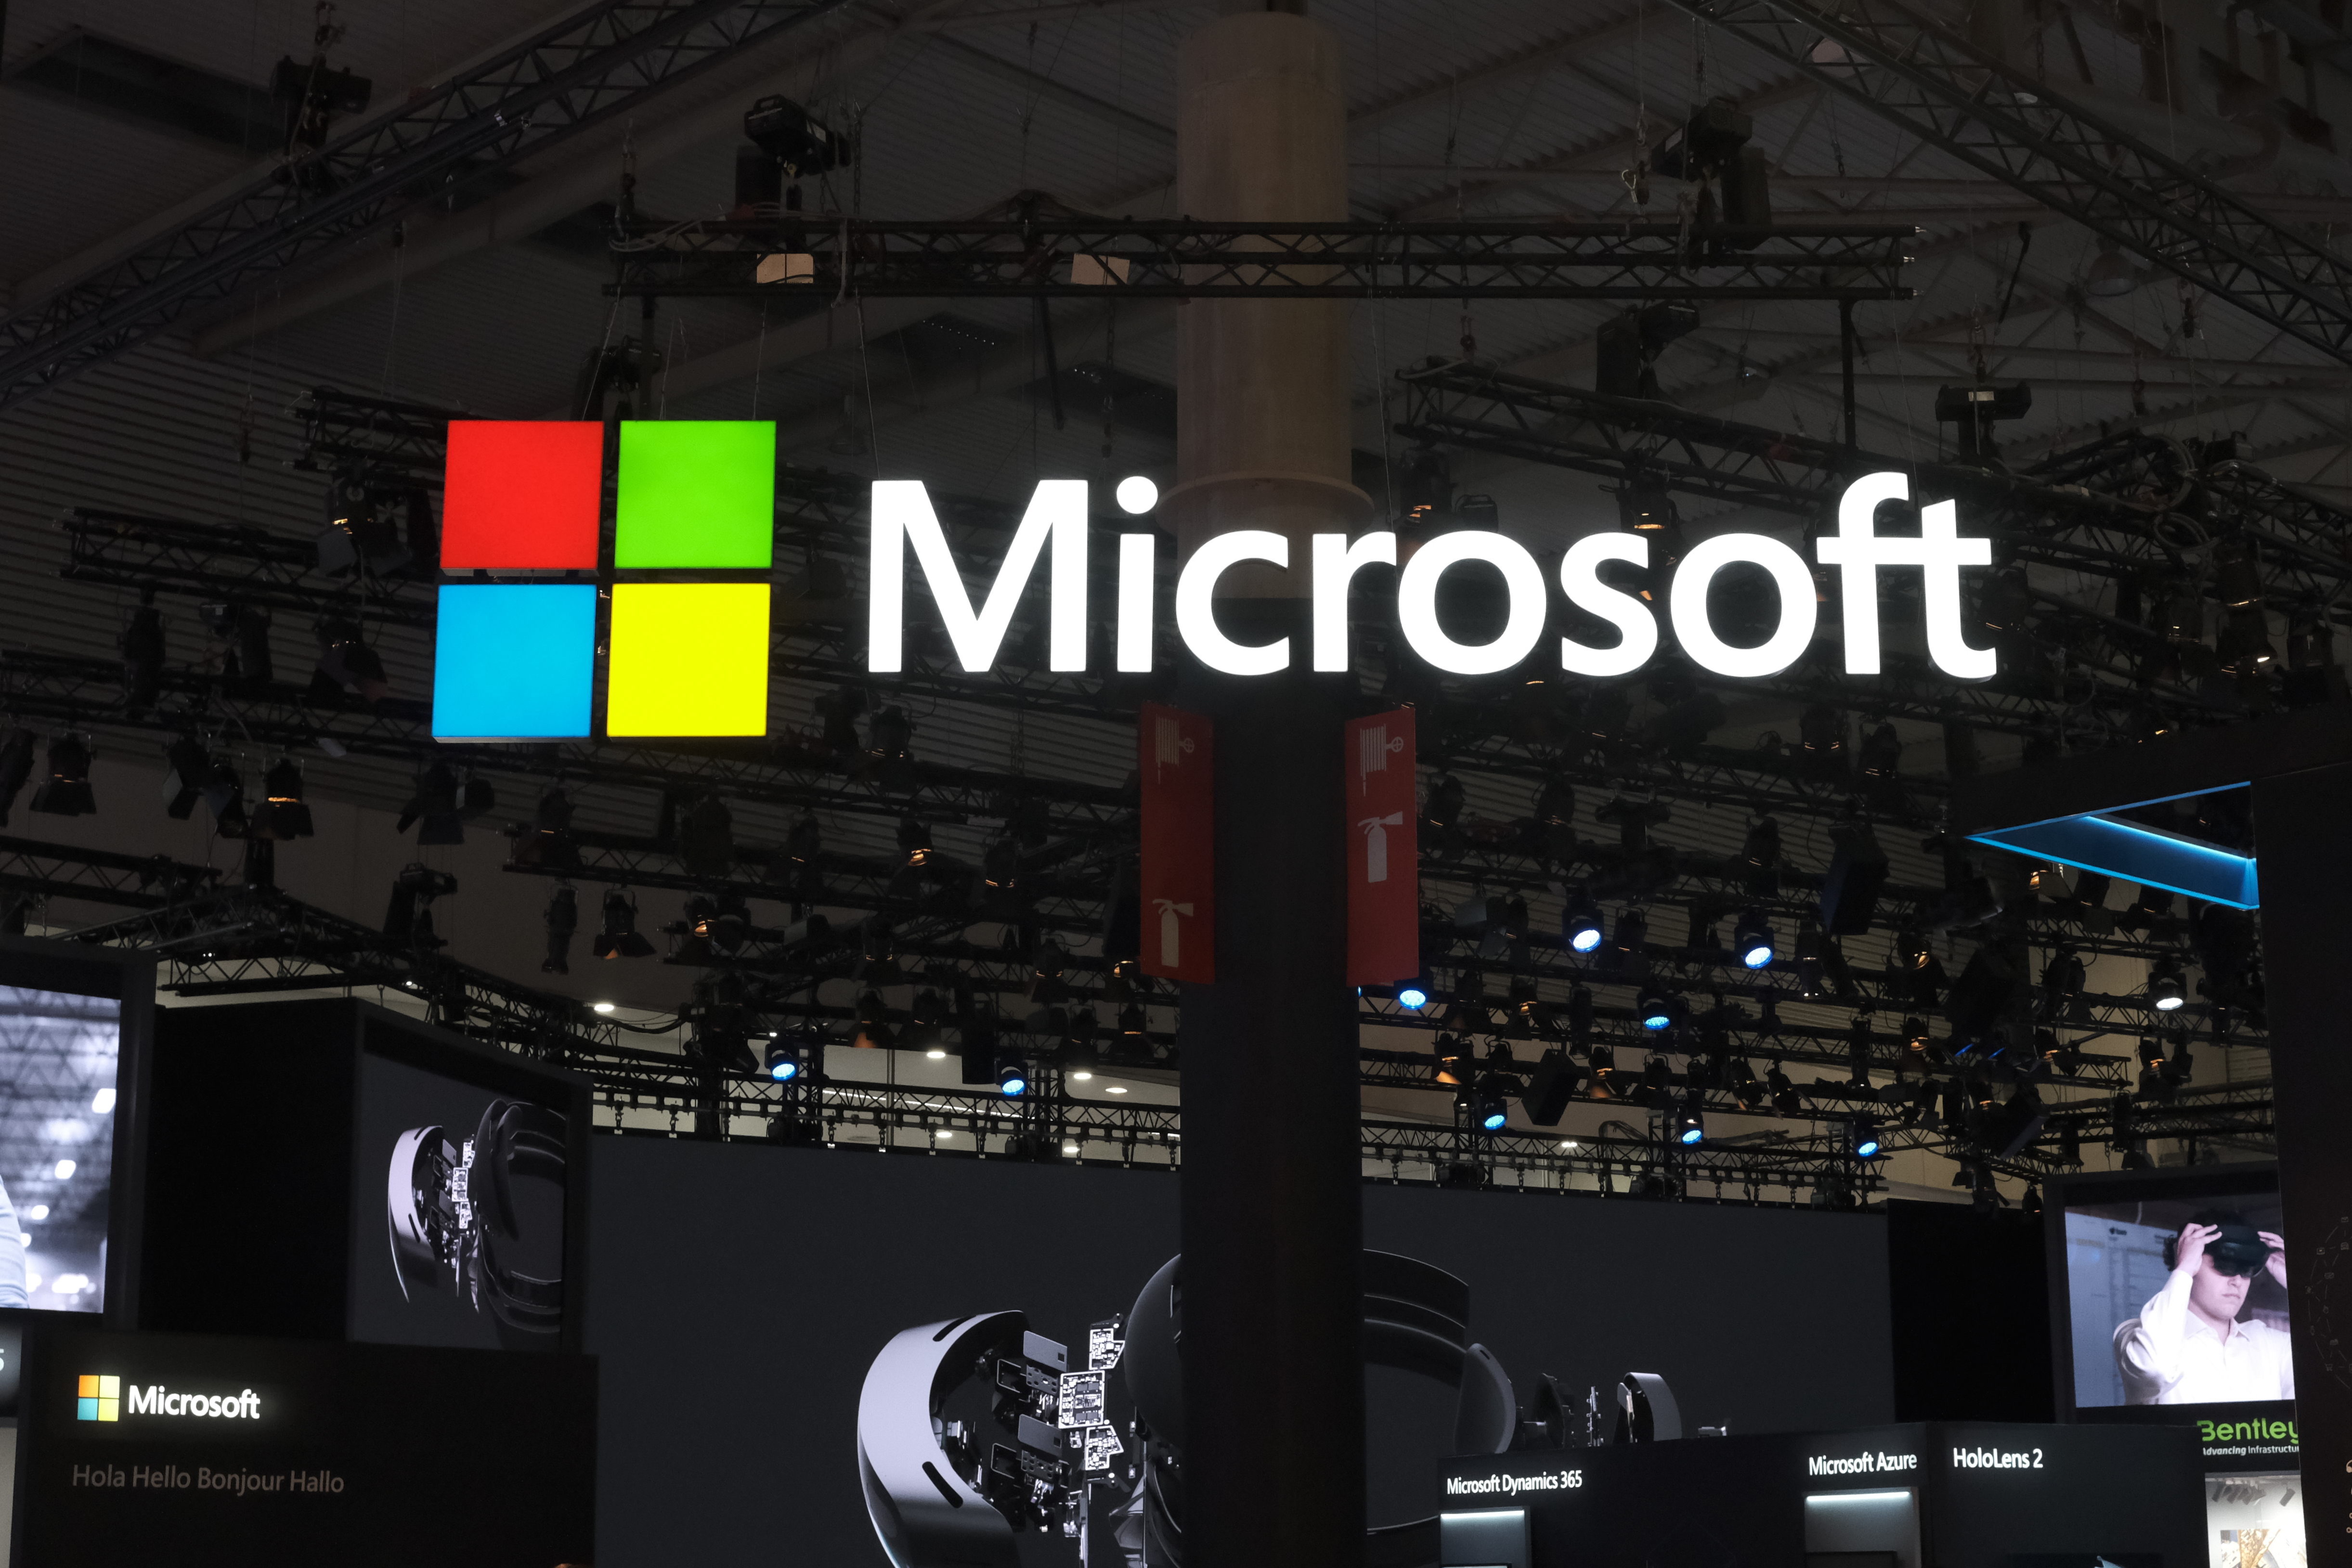 Microsoft and Oracle link up their clouds | TechCrunch